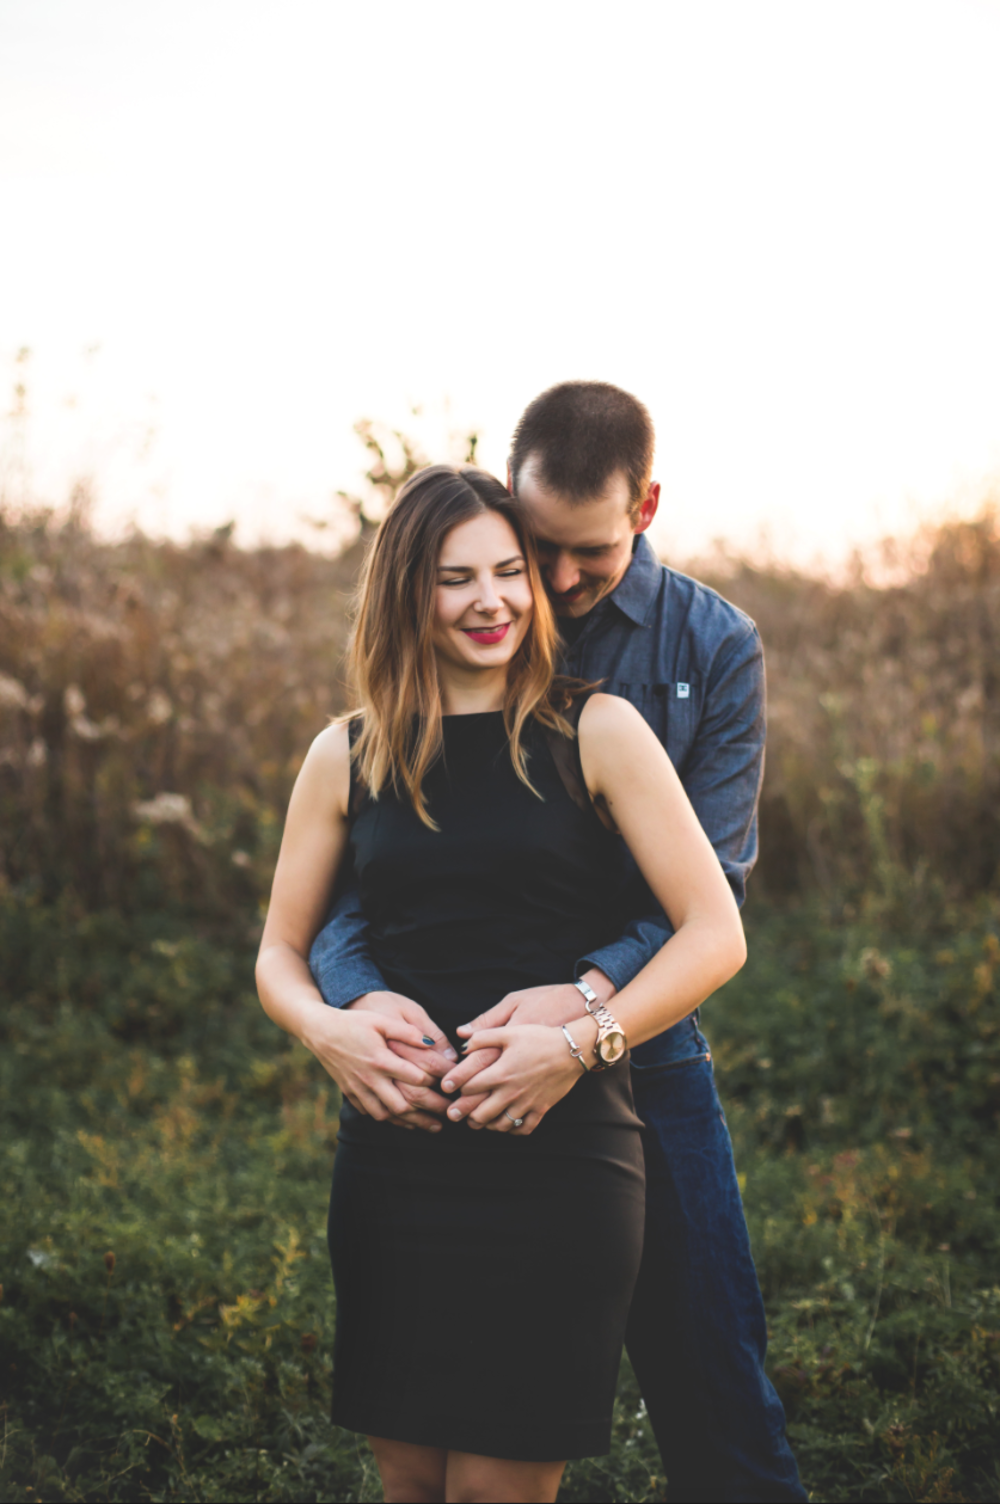 Engagement-Session-Brantford-Hamilton-Burlington-Oakville-Niagara-Toronto-Wedding-Photographer-Engaged-Photography-Golden-Hour-Moments-by-Lauren-Photo-Image-12.png